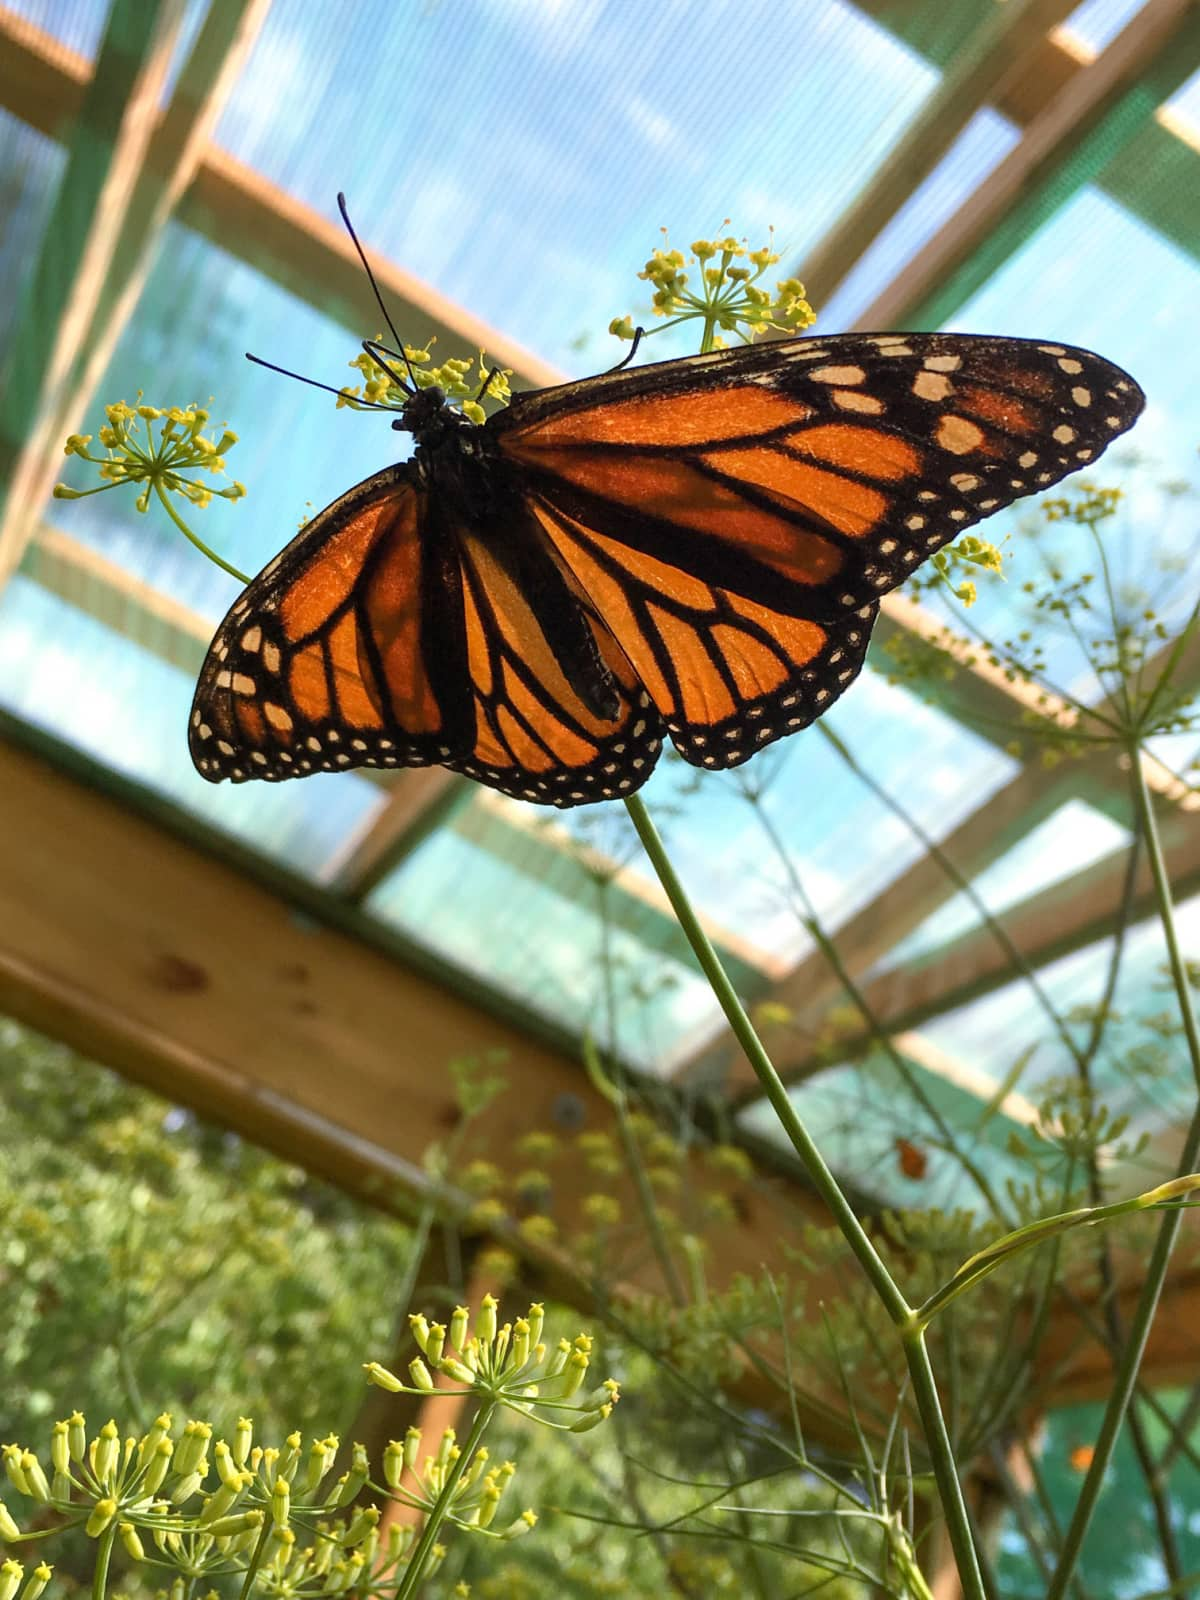 Monarch butterfly at Up Yonda Farm